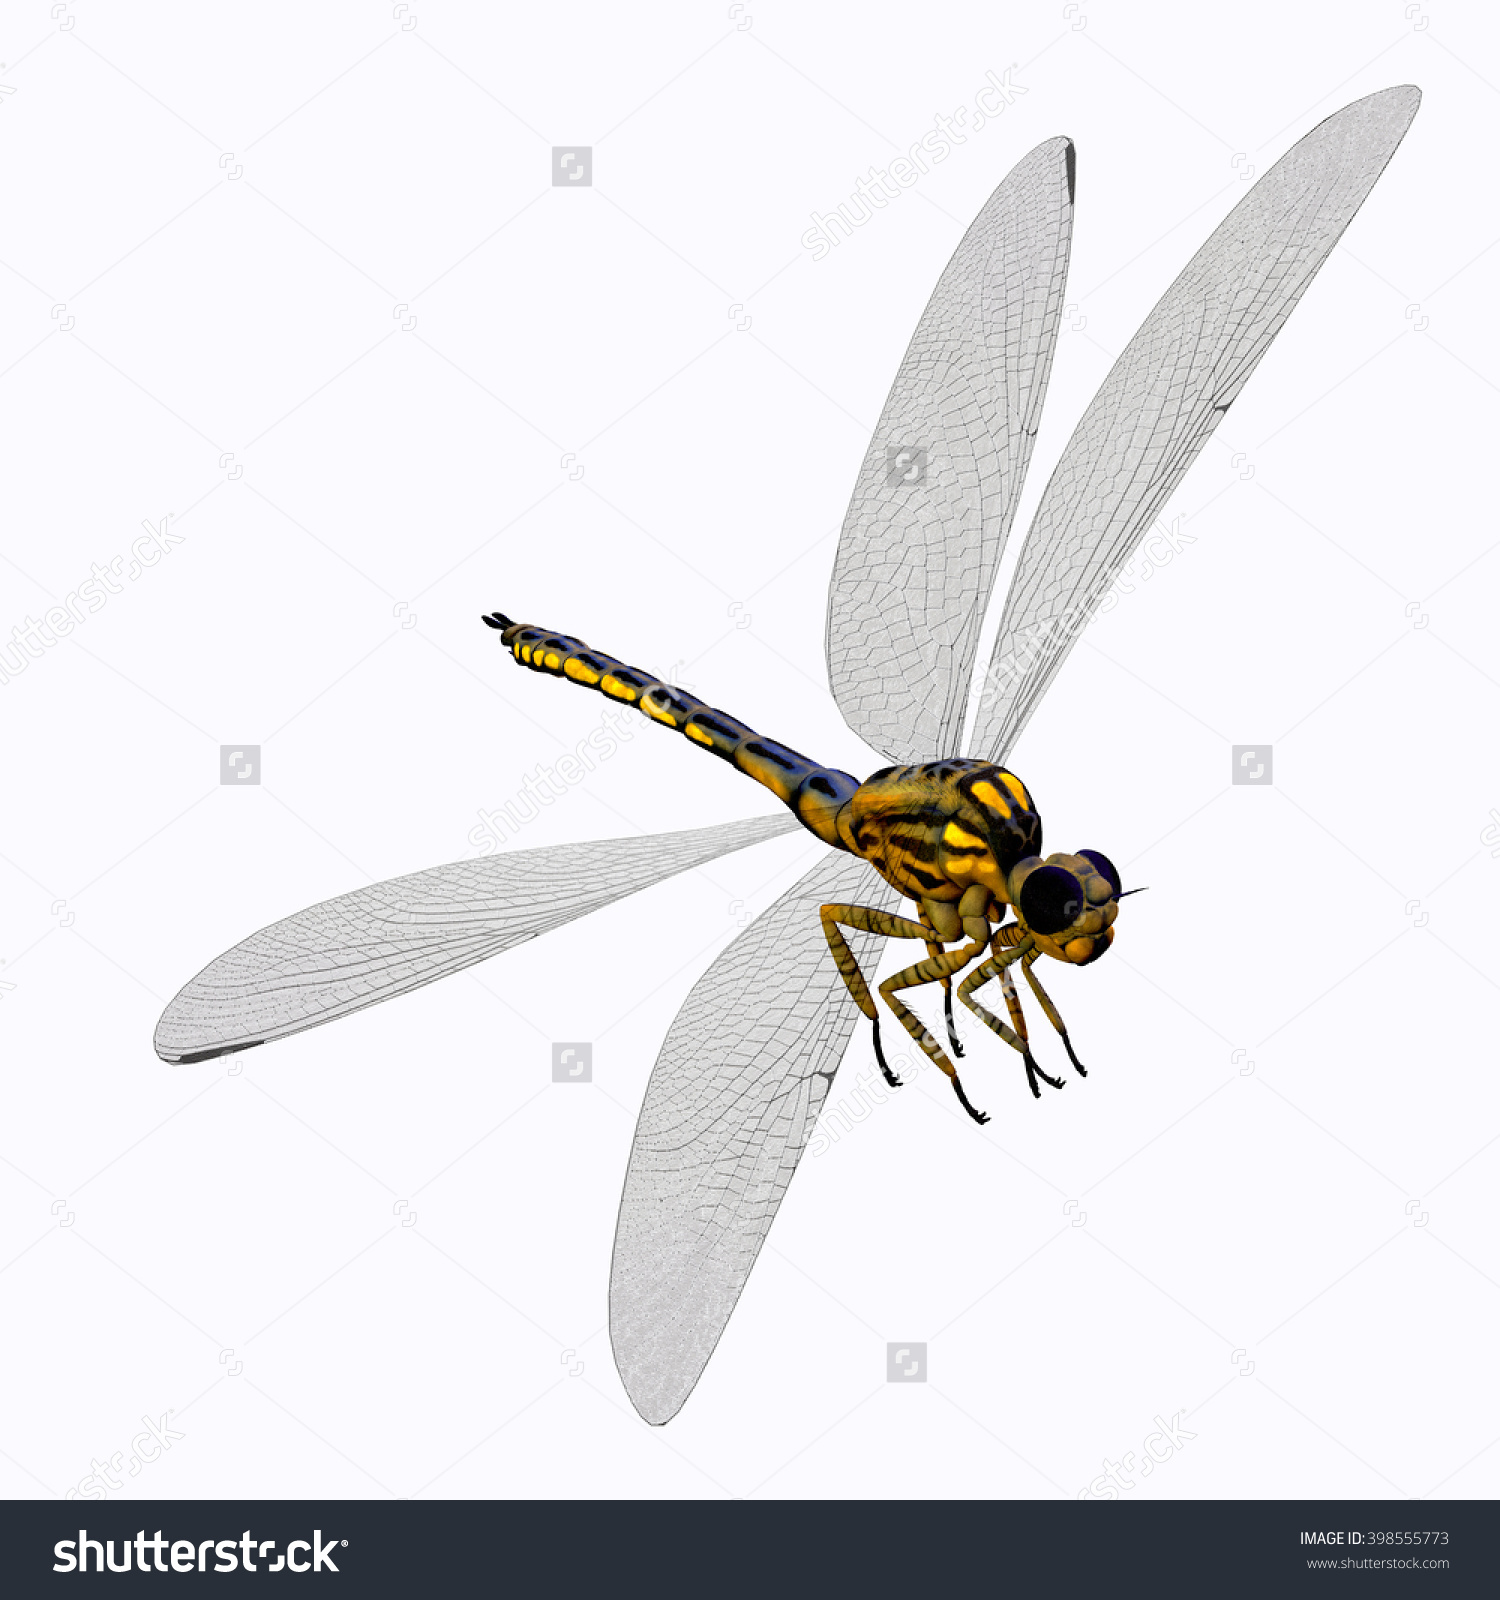 Meganeura Dragonfly Body 3d Illustration.